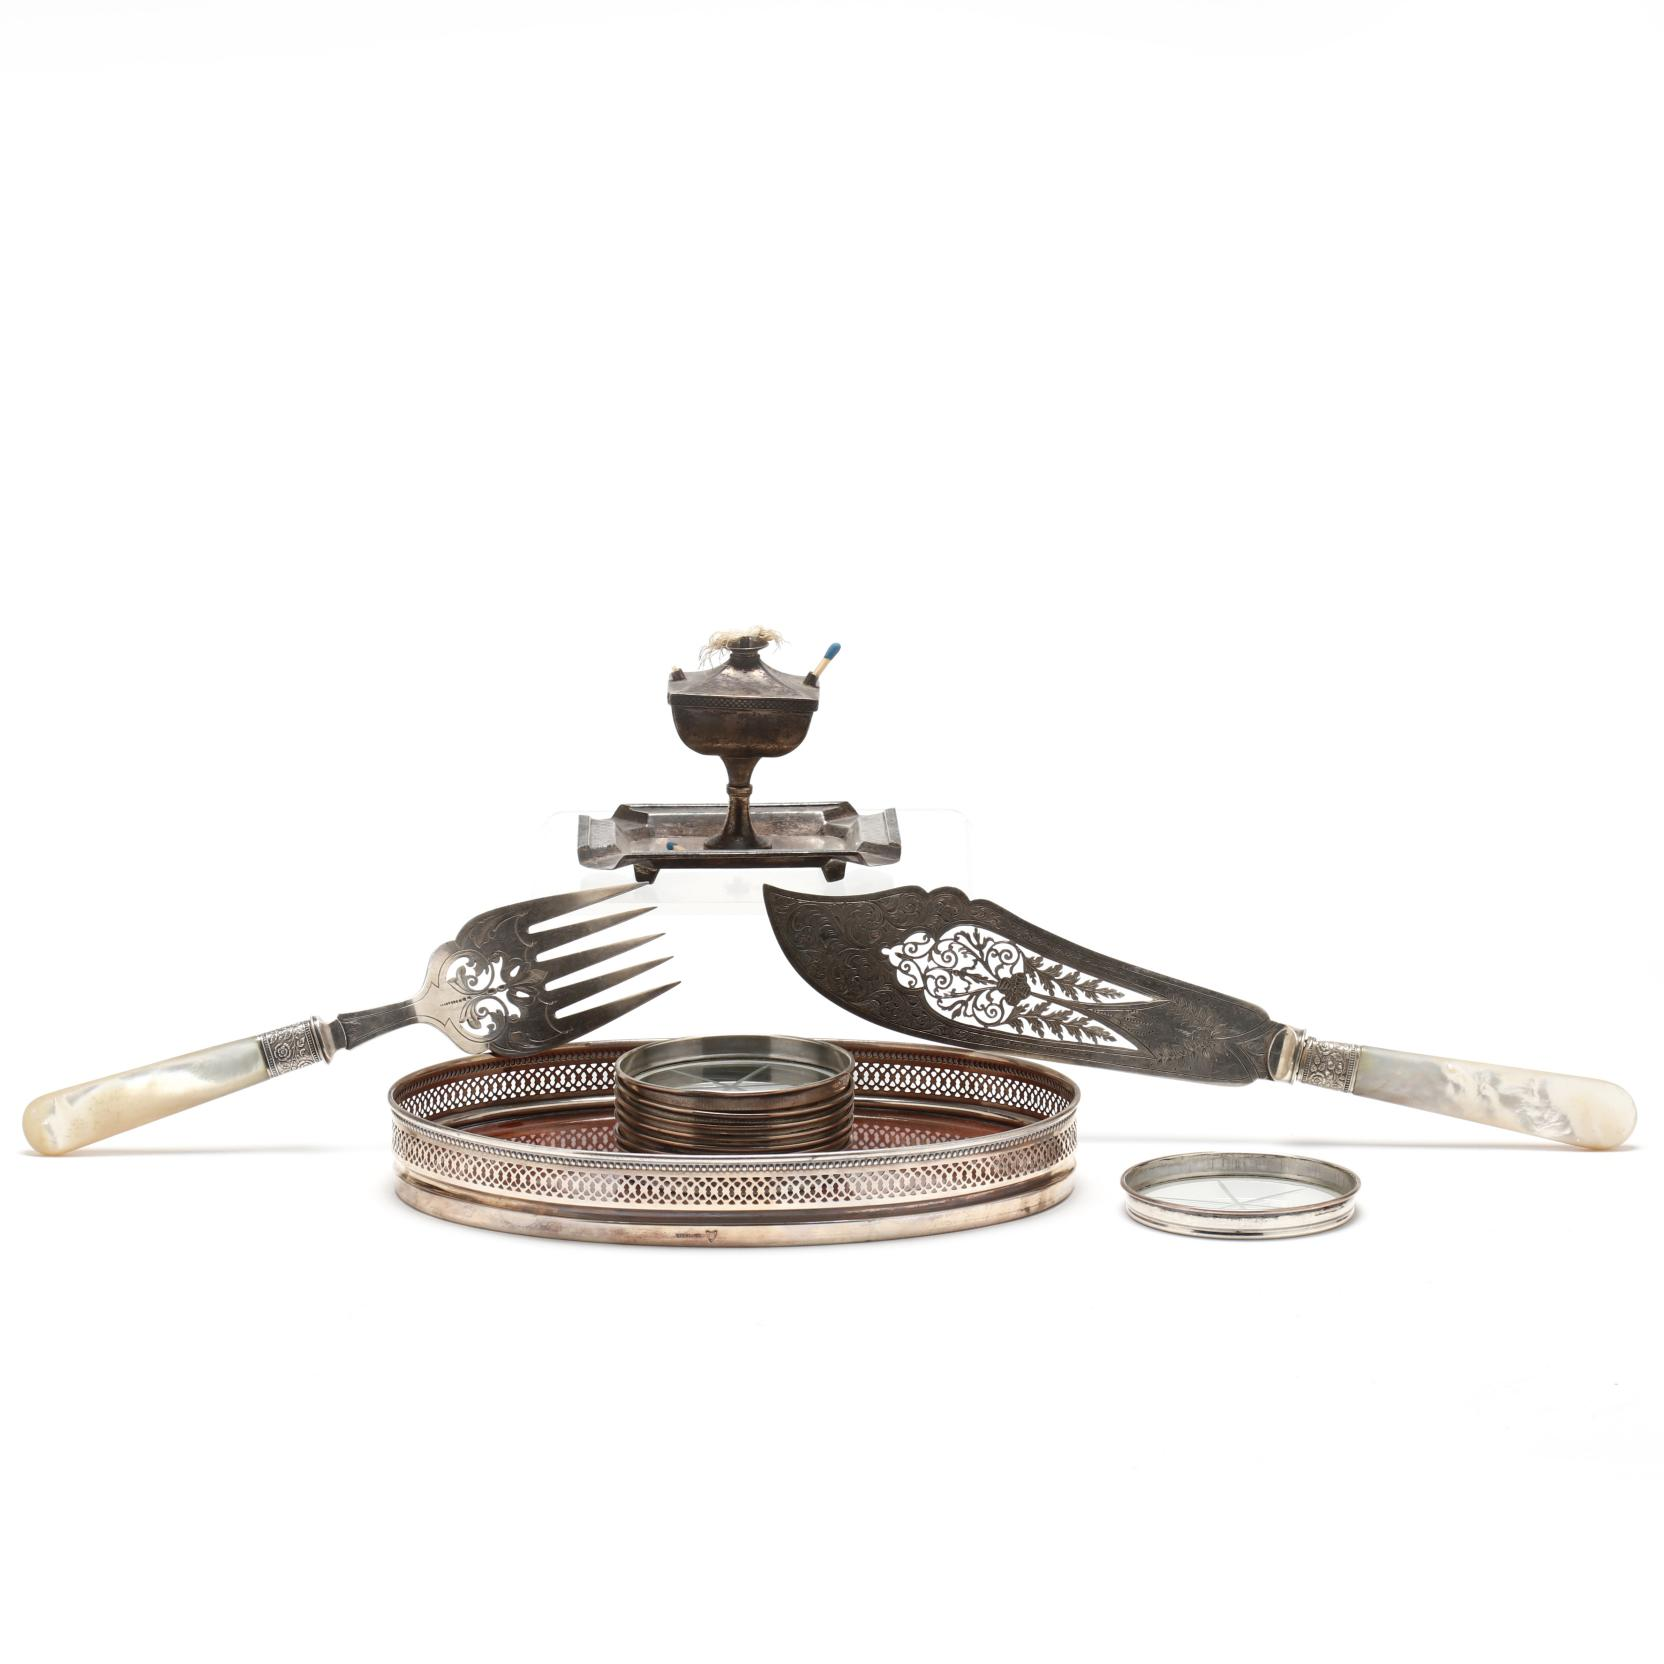 a-group-of-vintage-antique-silver